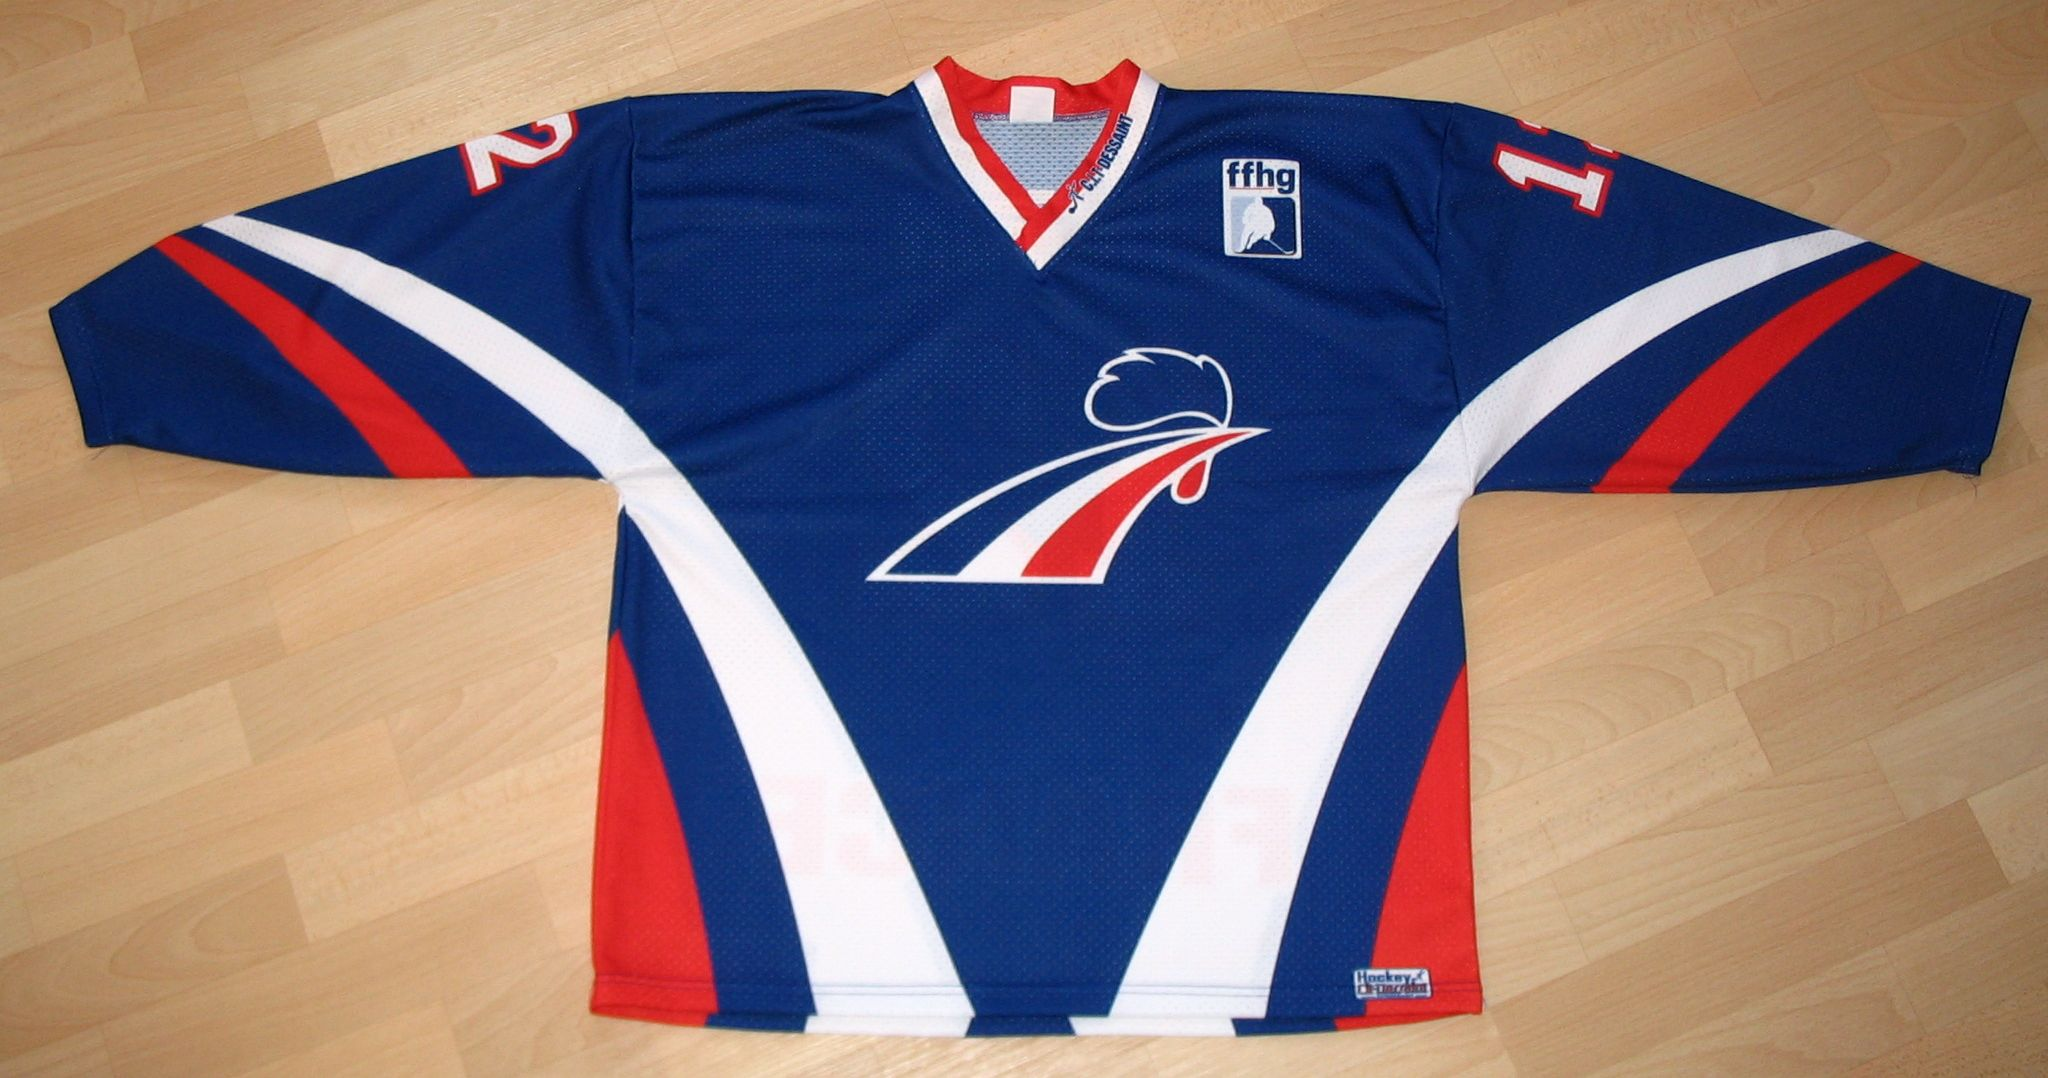 Hockey jersey - Wikipedia 196e63cc965